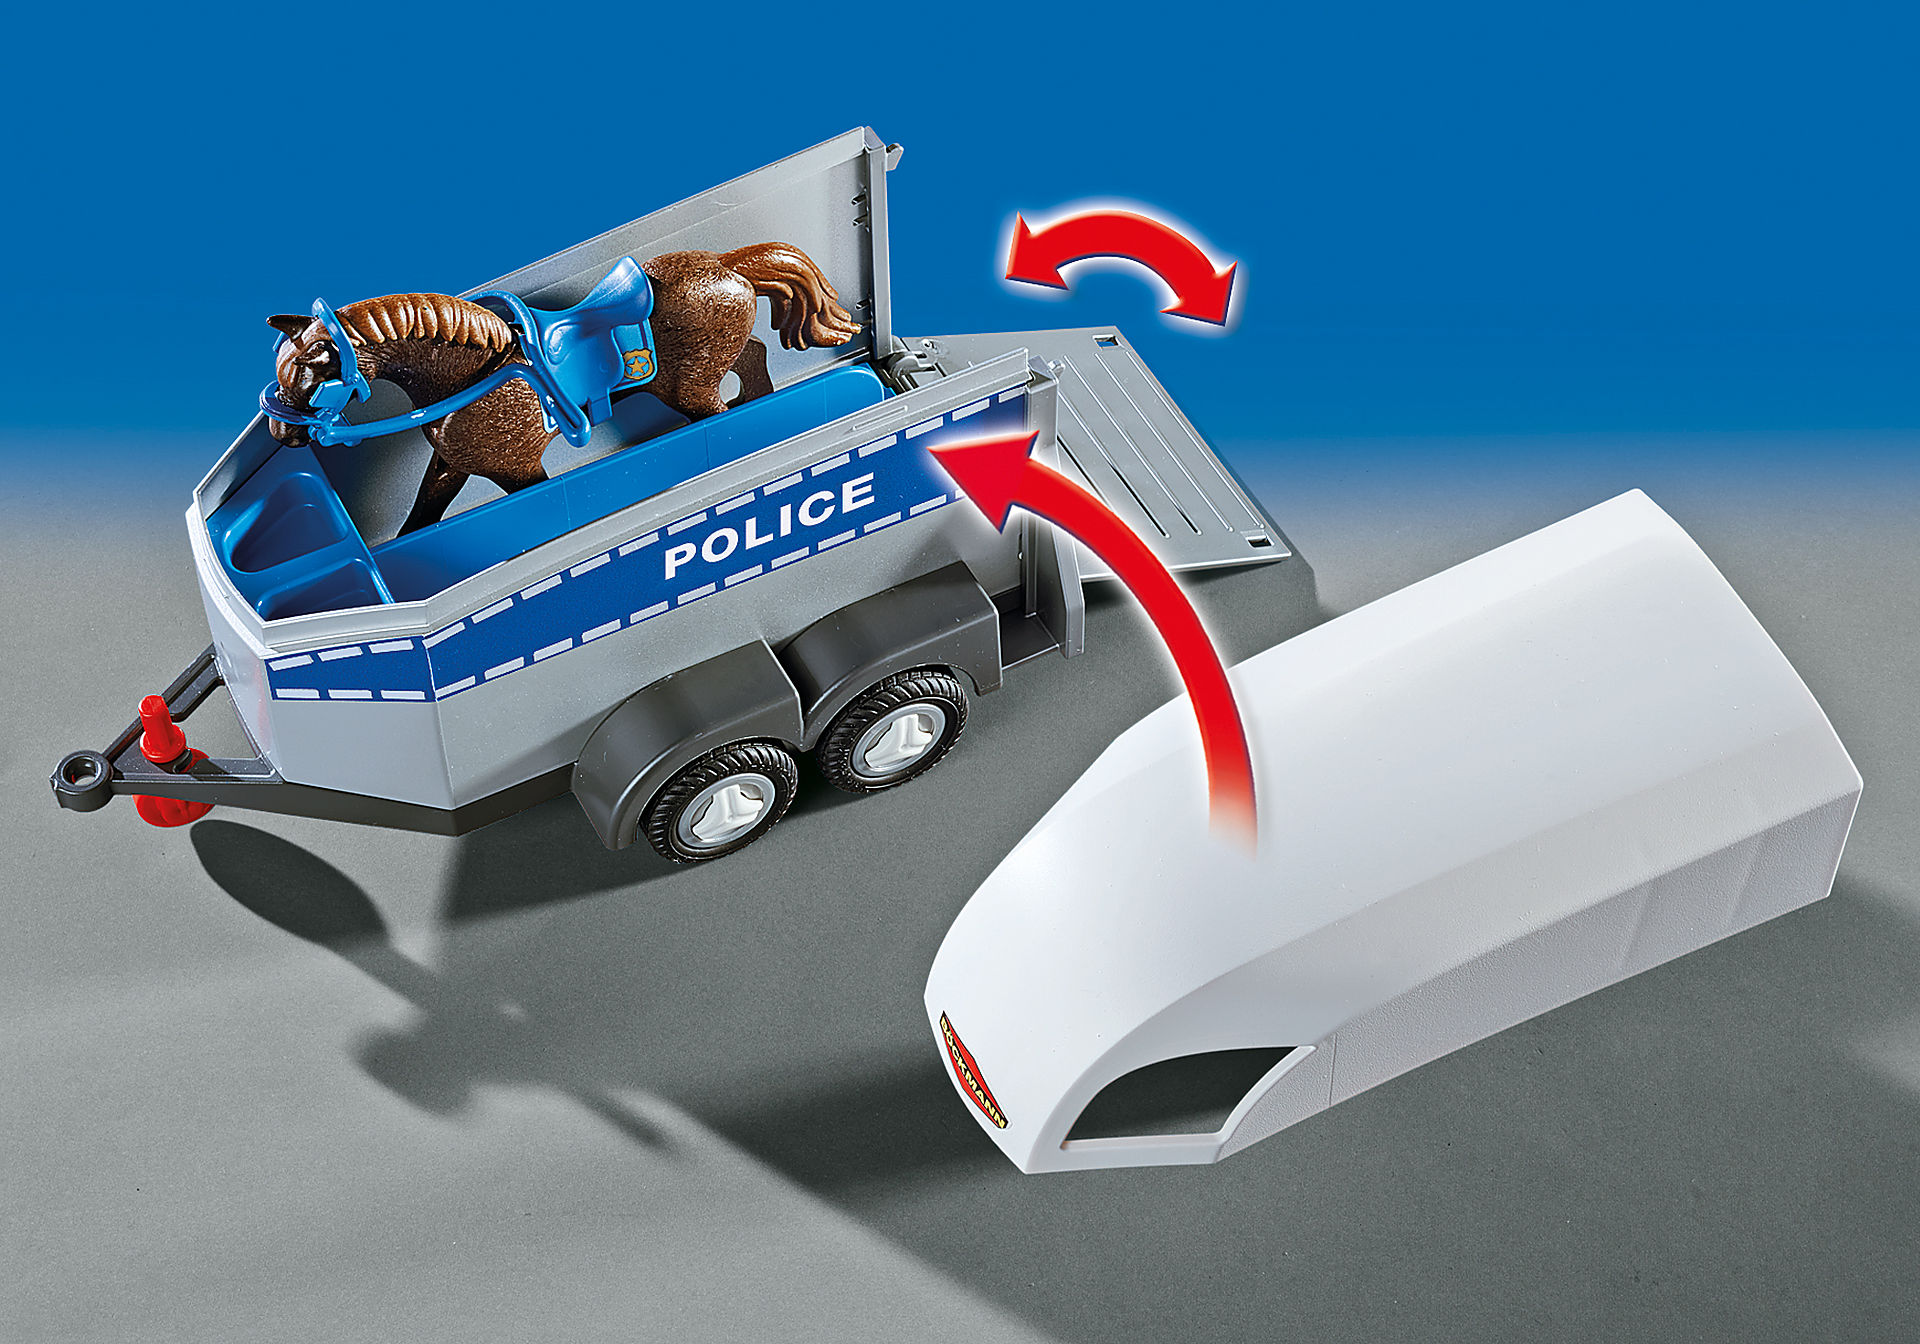 6922 Police with Horse and Trailer zoom image5